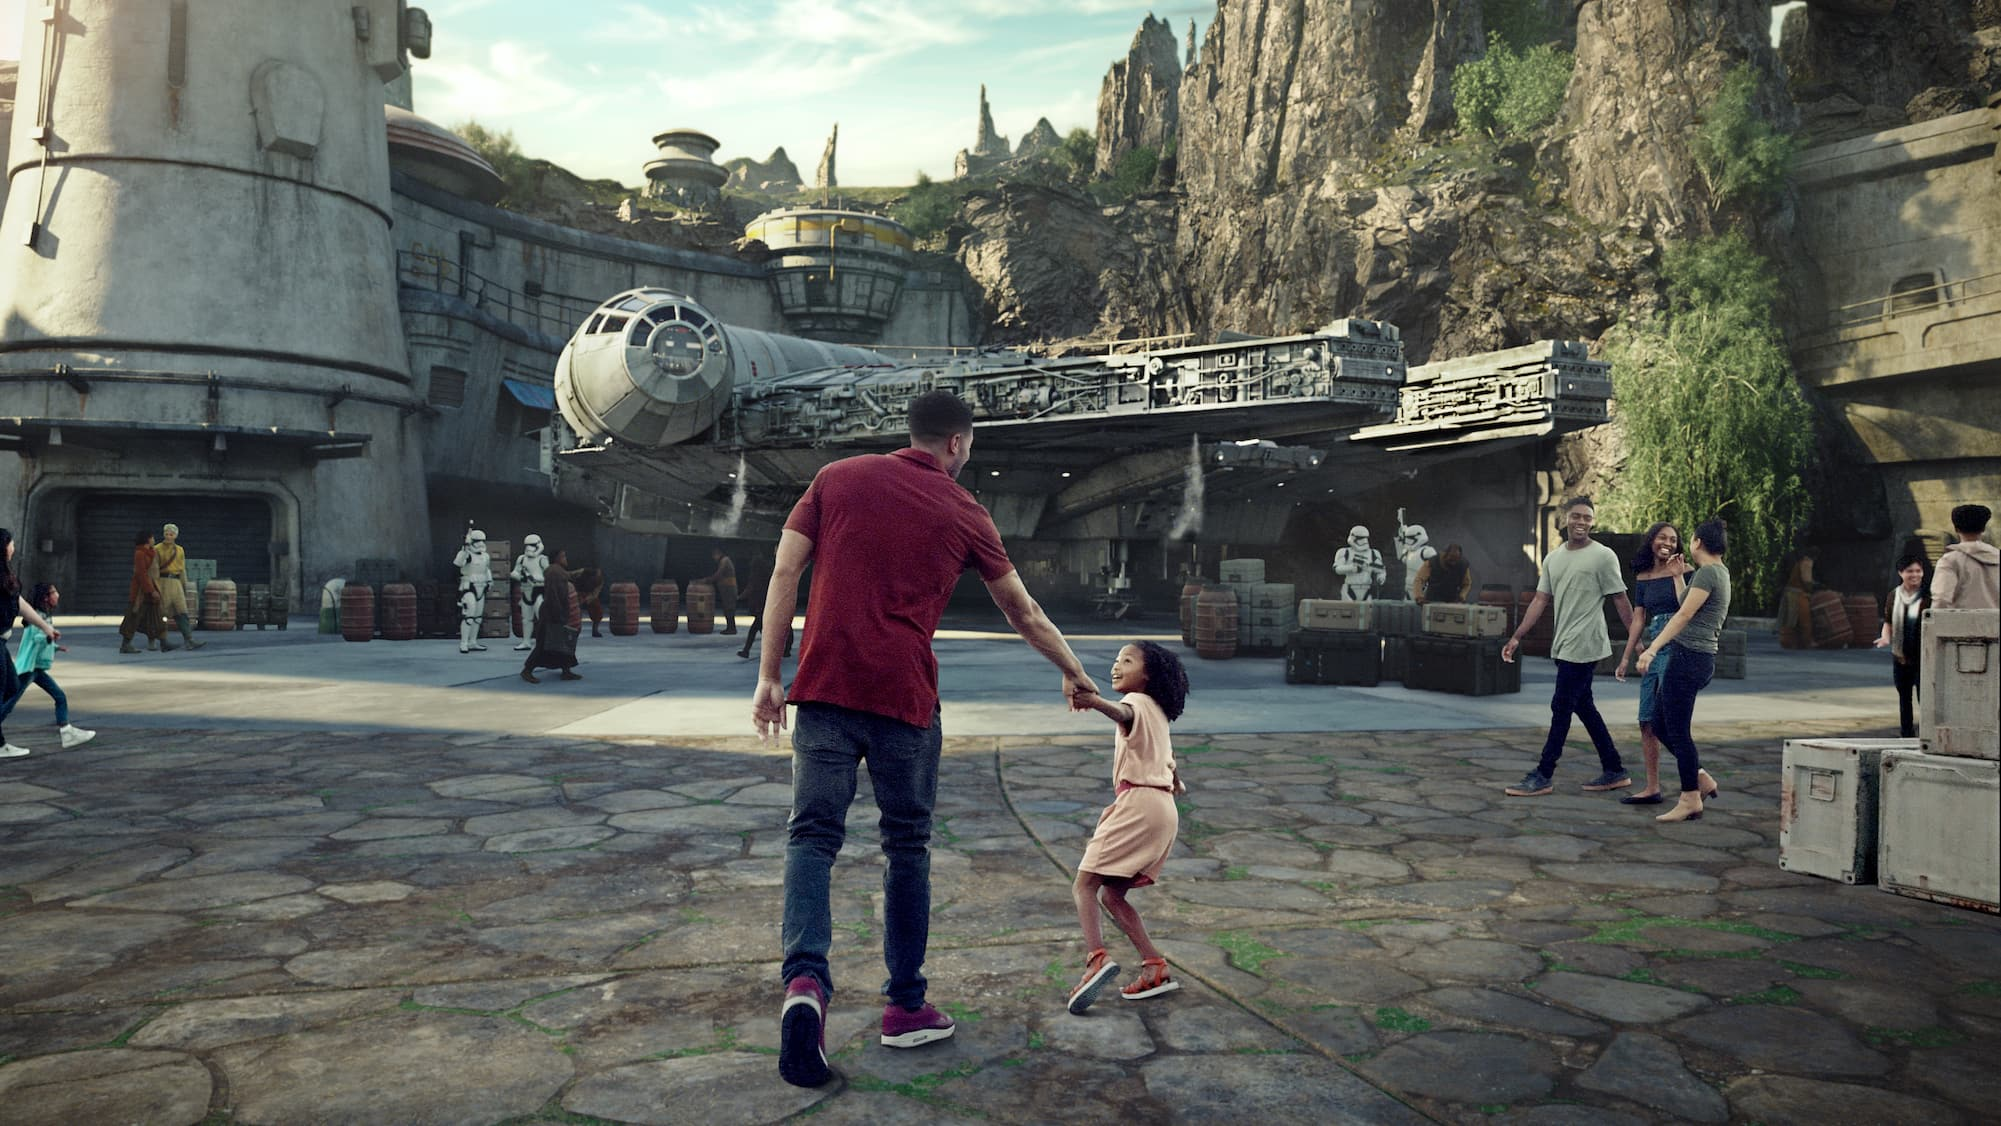 Star Wars: Galaxy's Edge at Disney's Hollywood Studios in